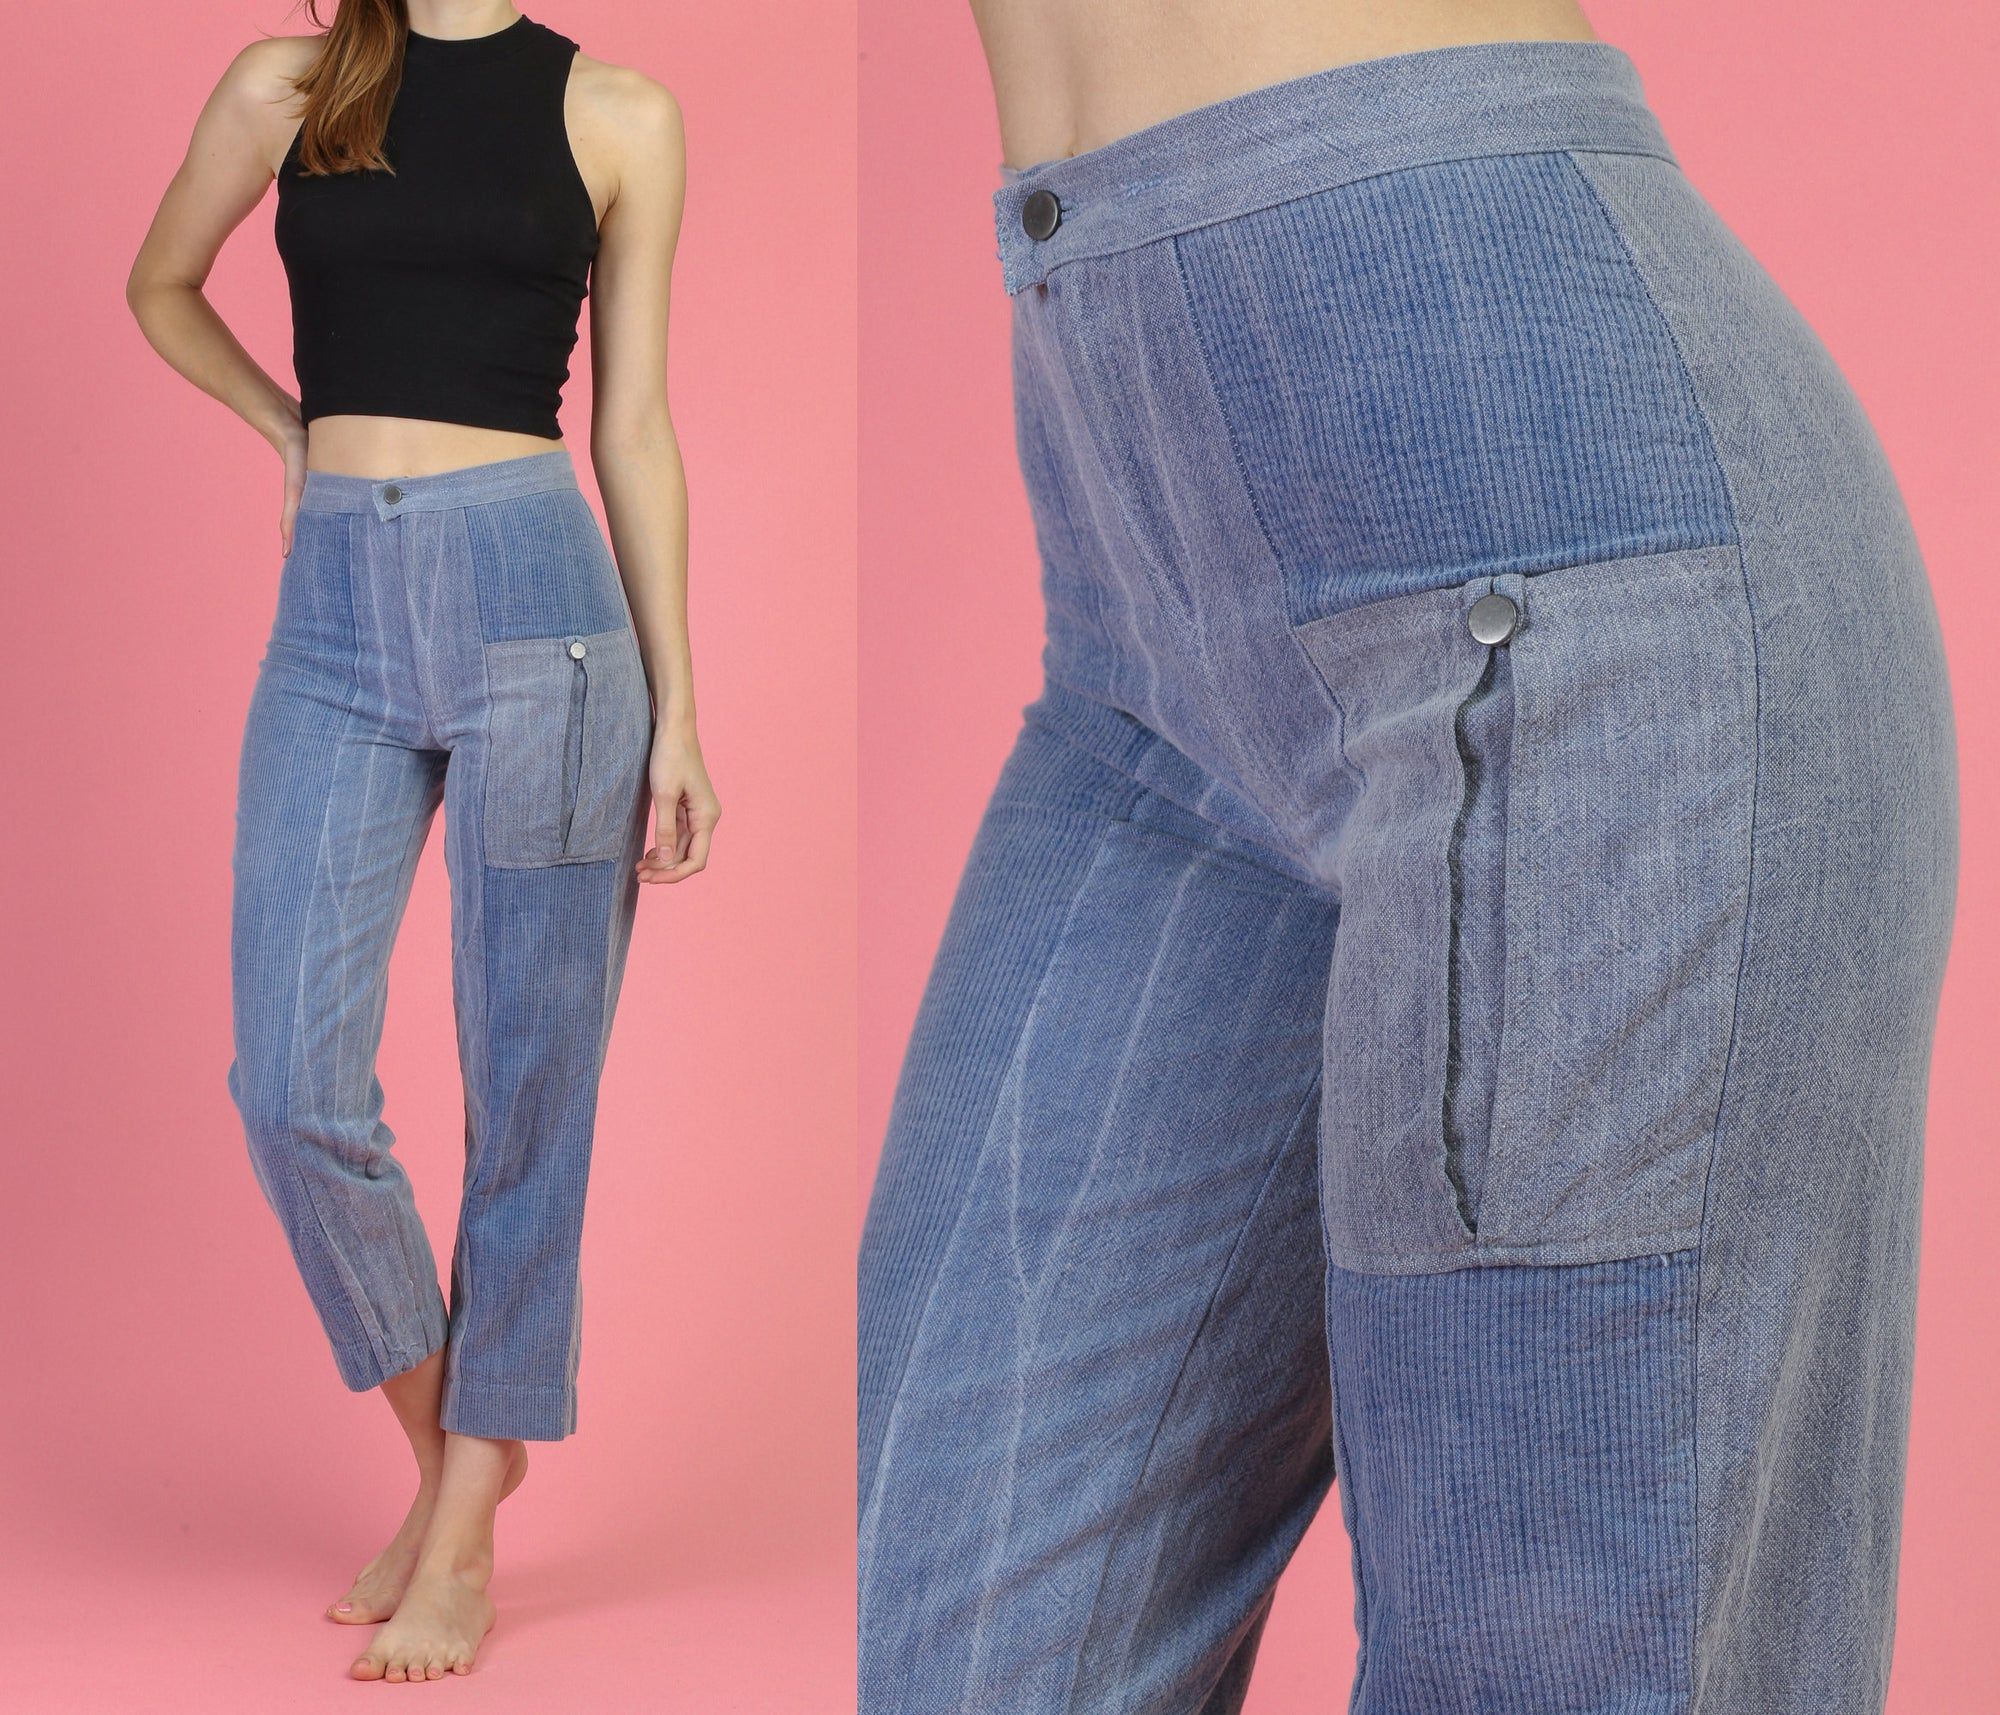 Vintage Ribbed High Waist Jeans - XS to Small